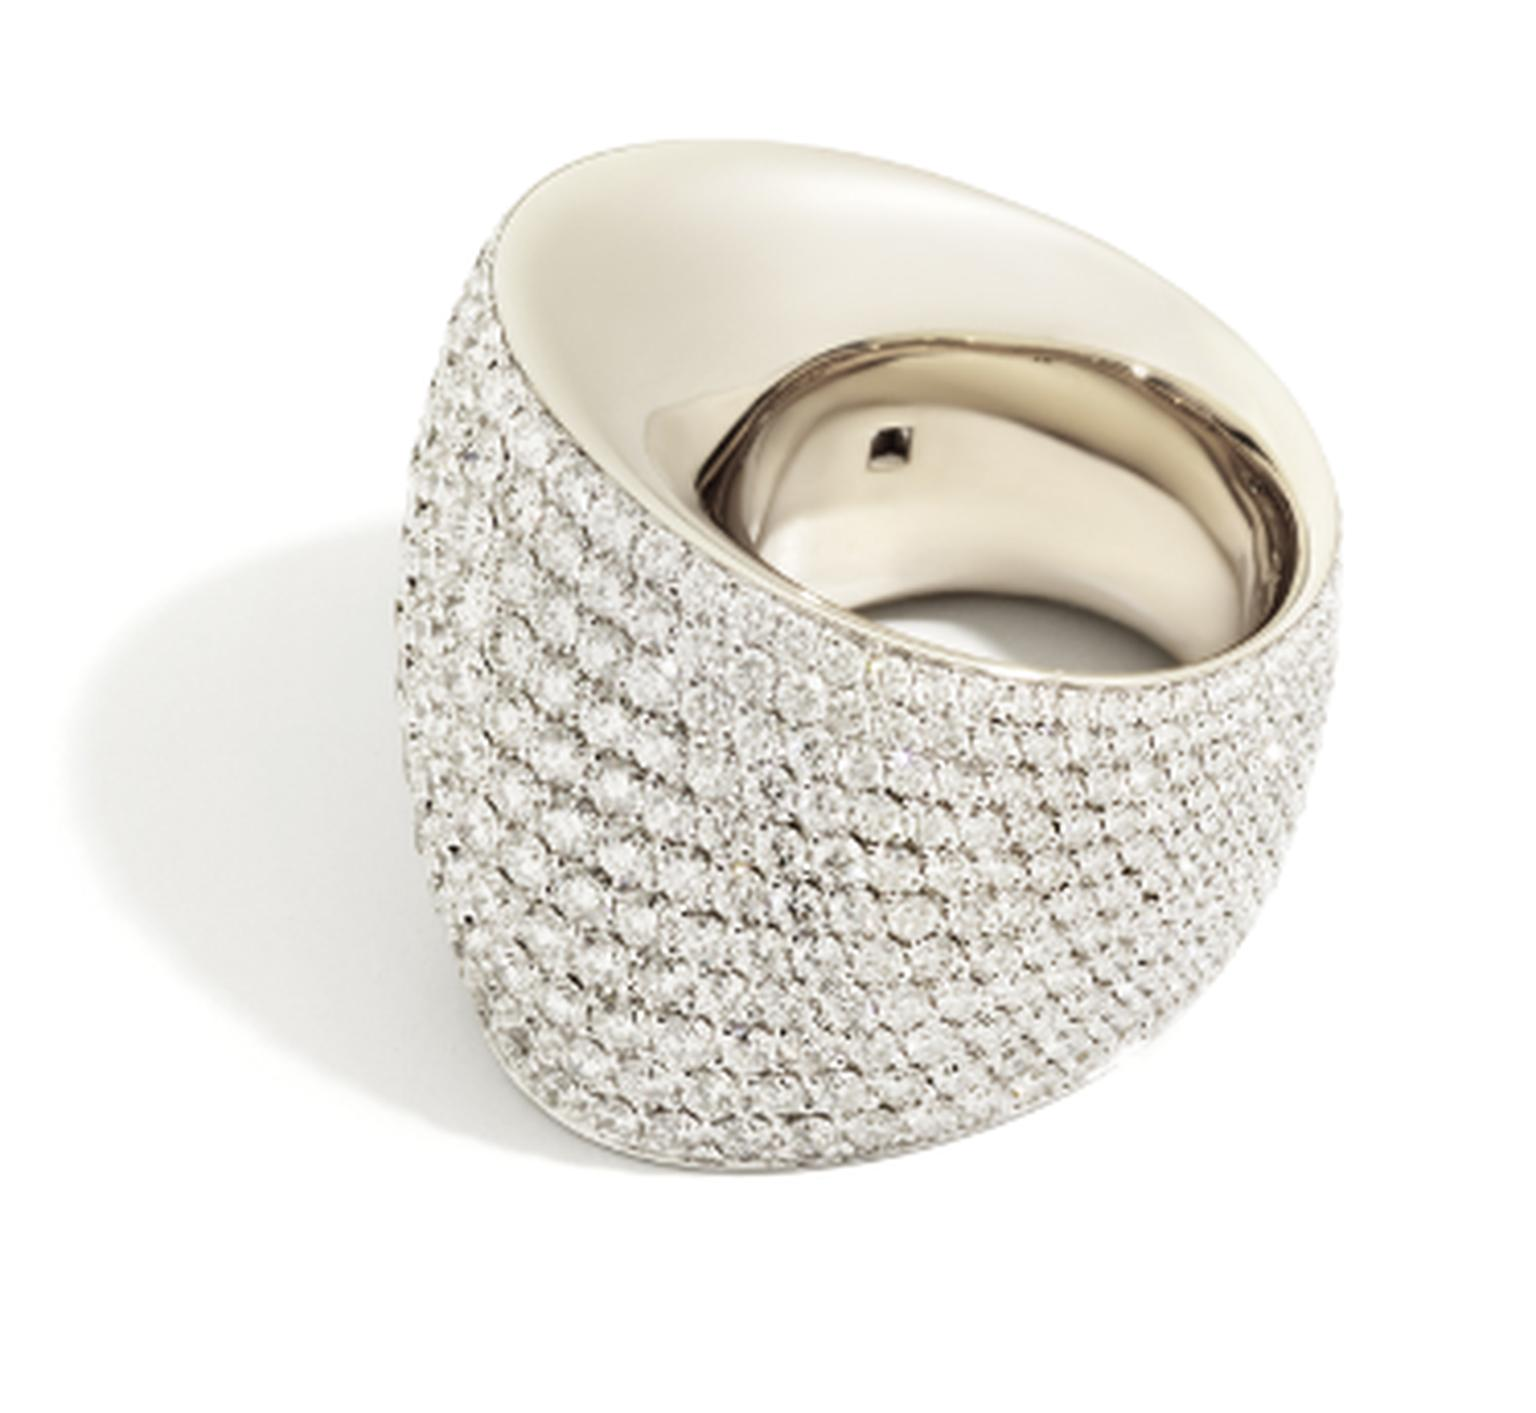 Vhernier Tonneau ring in white gold with white diamonds. An Editorialist exclusive.